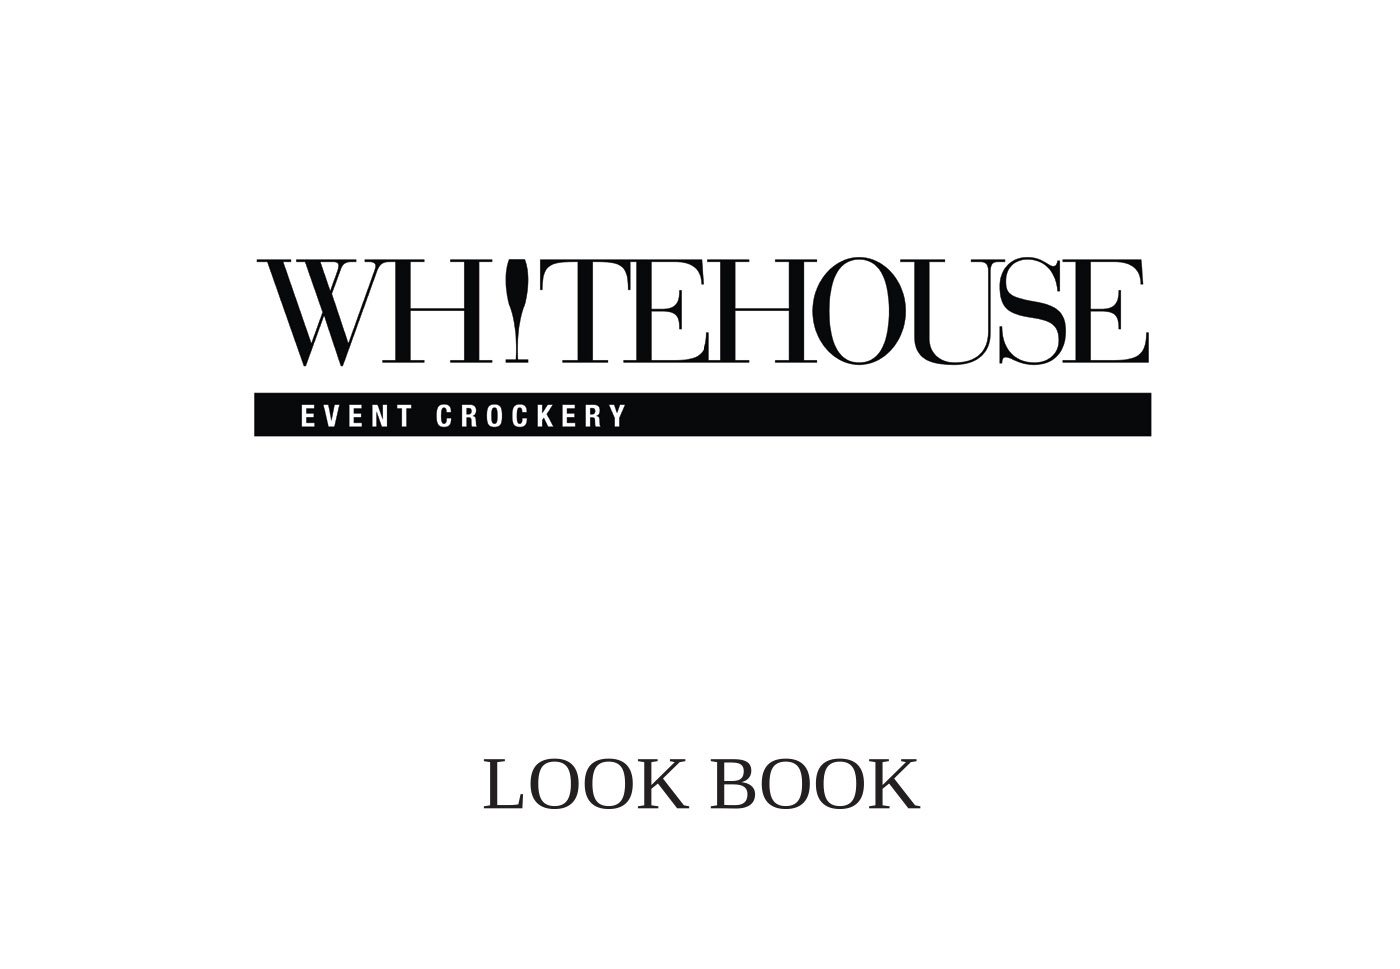 WHITEHOUSE_Lookbook_page1